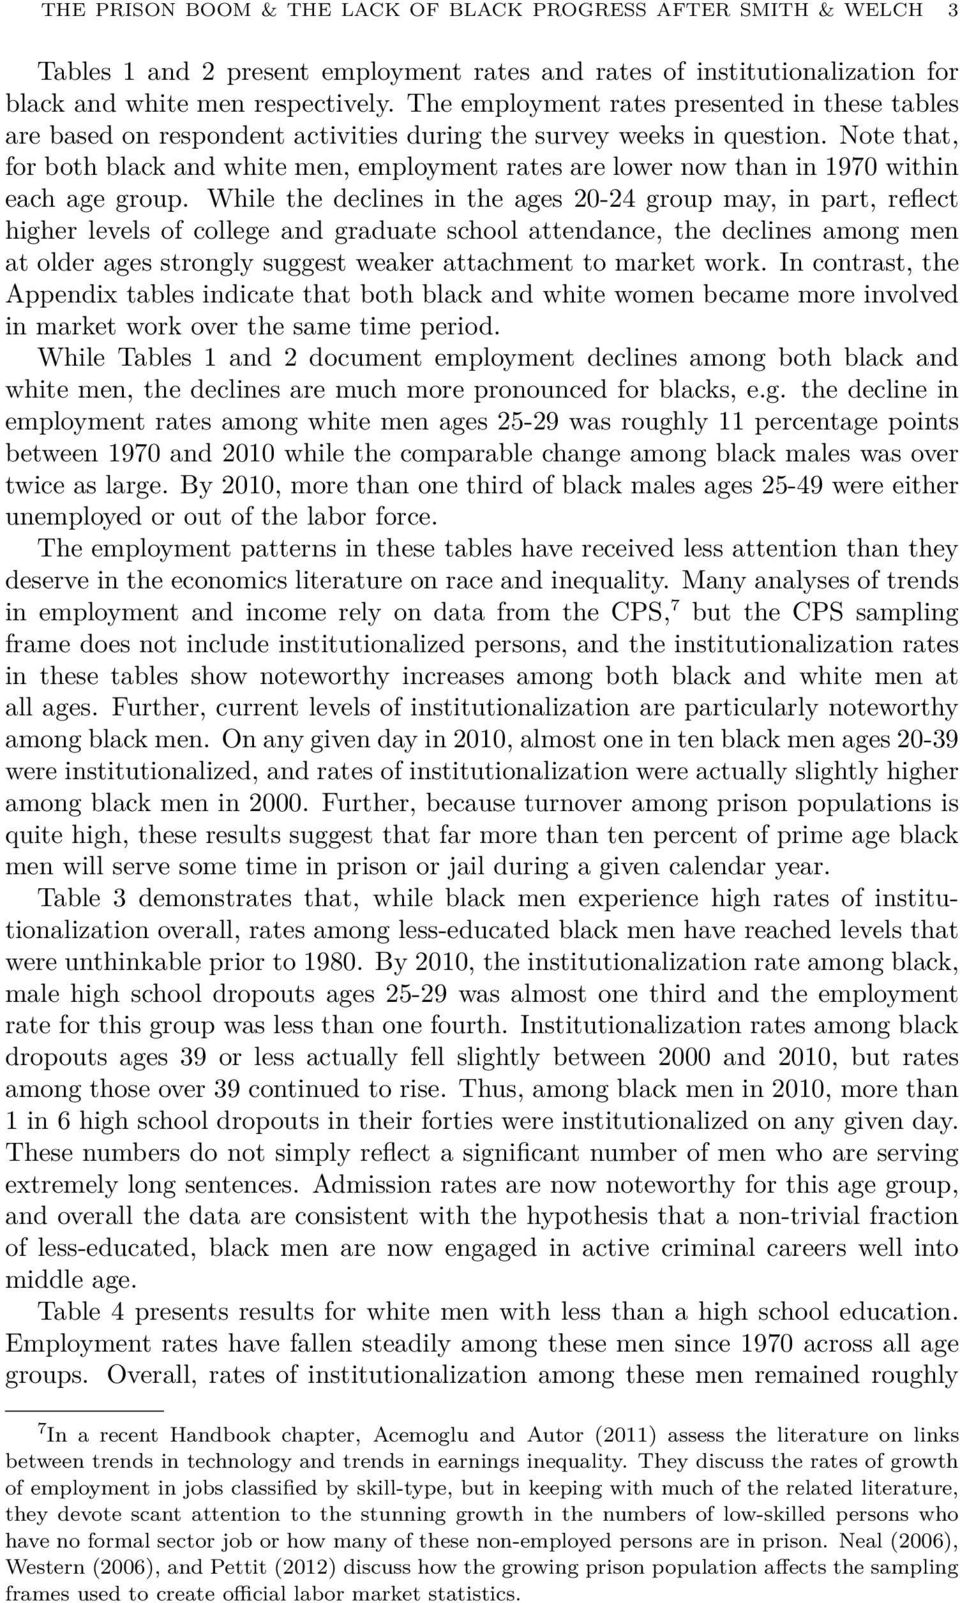 Note that, for both black and white men, employment rates are lower now than in 1970 within each age group.